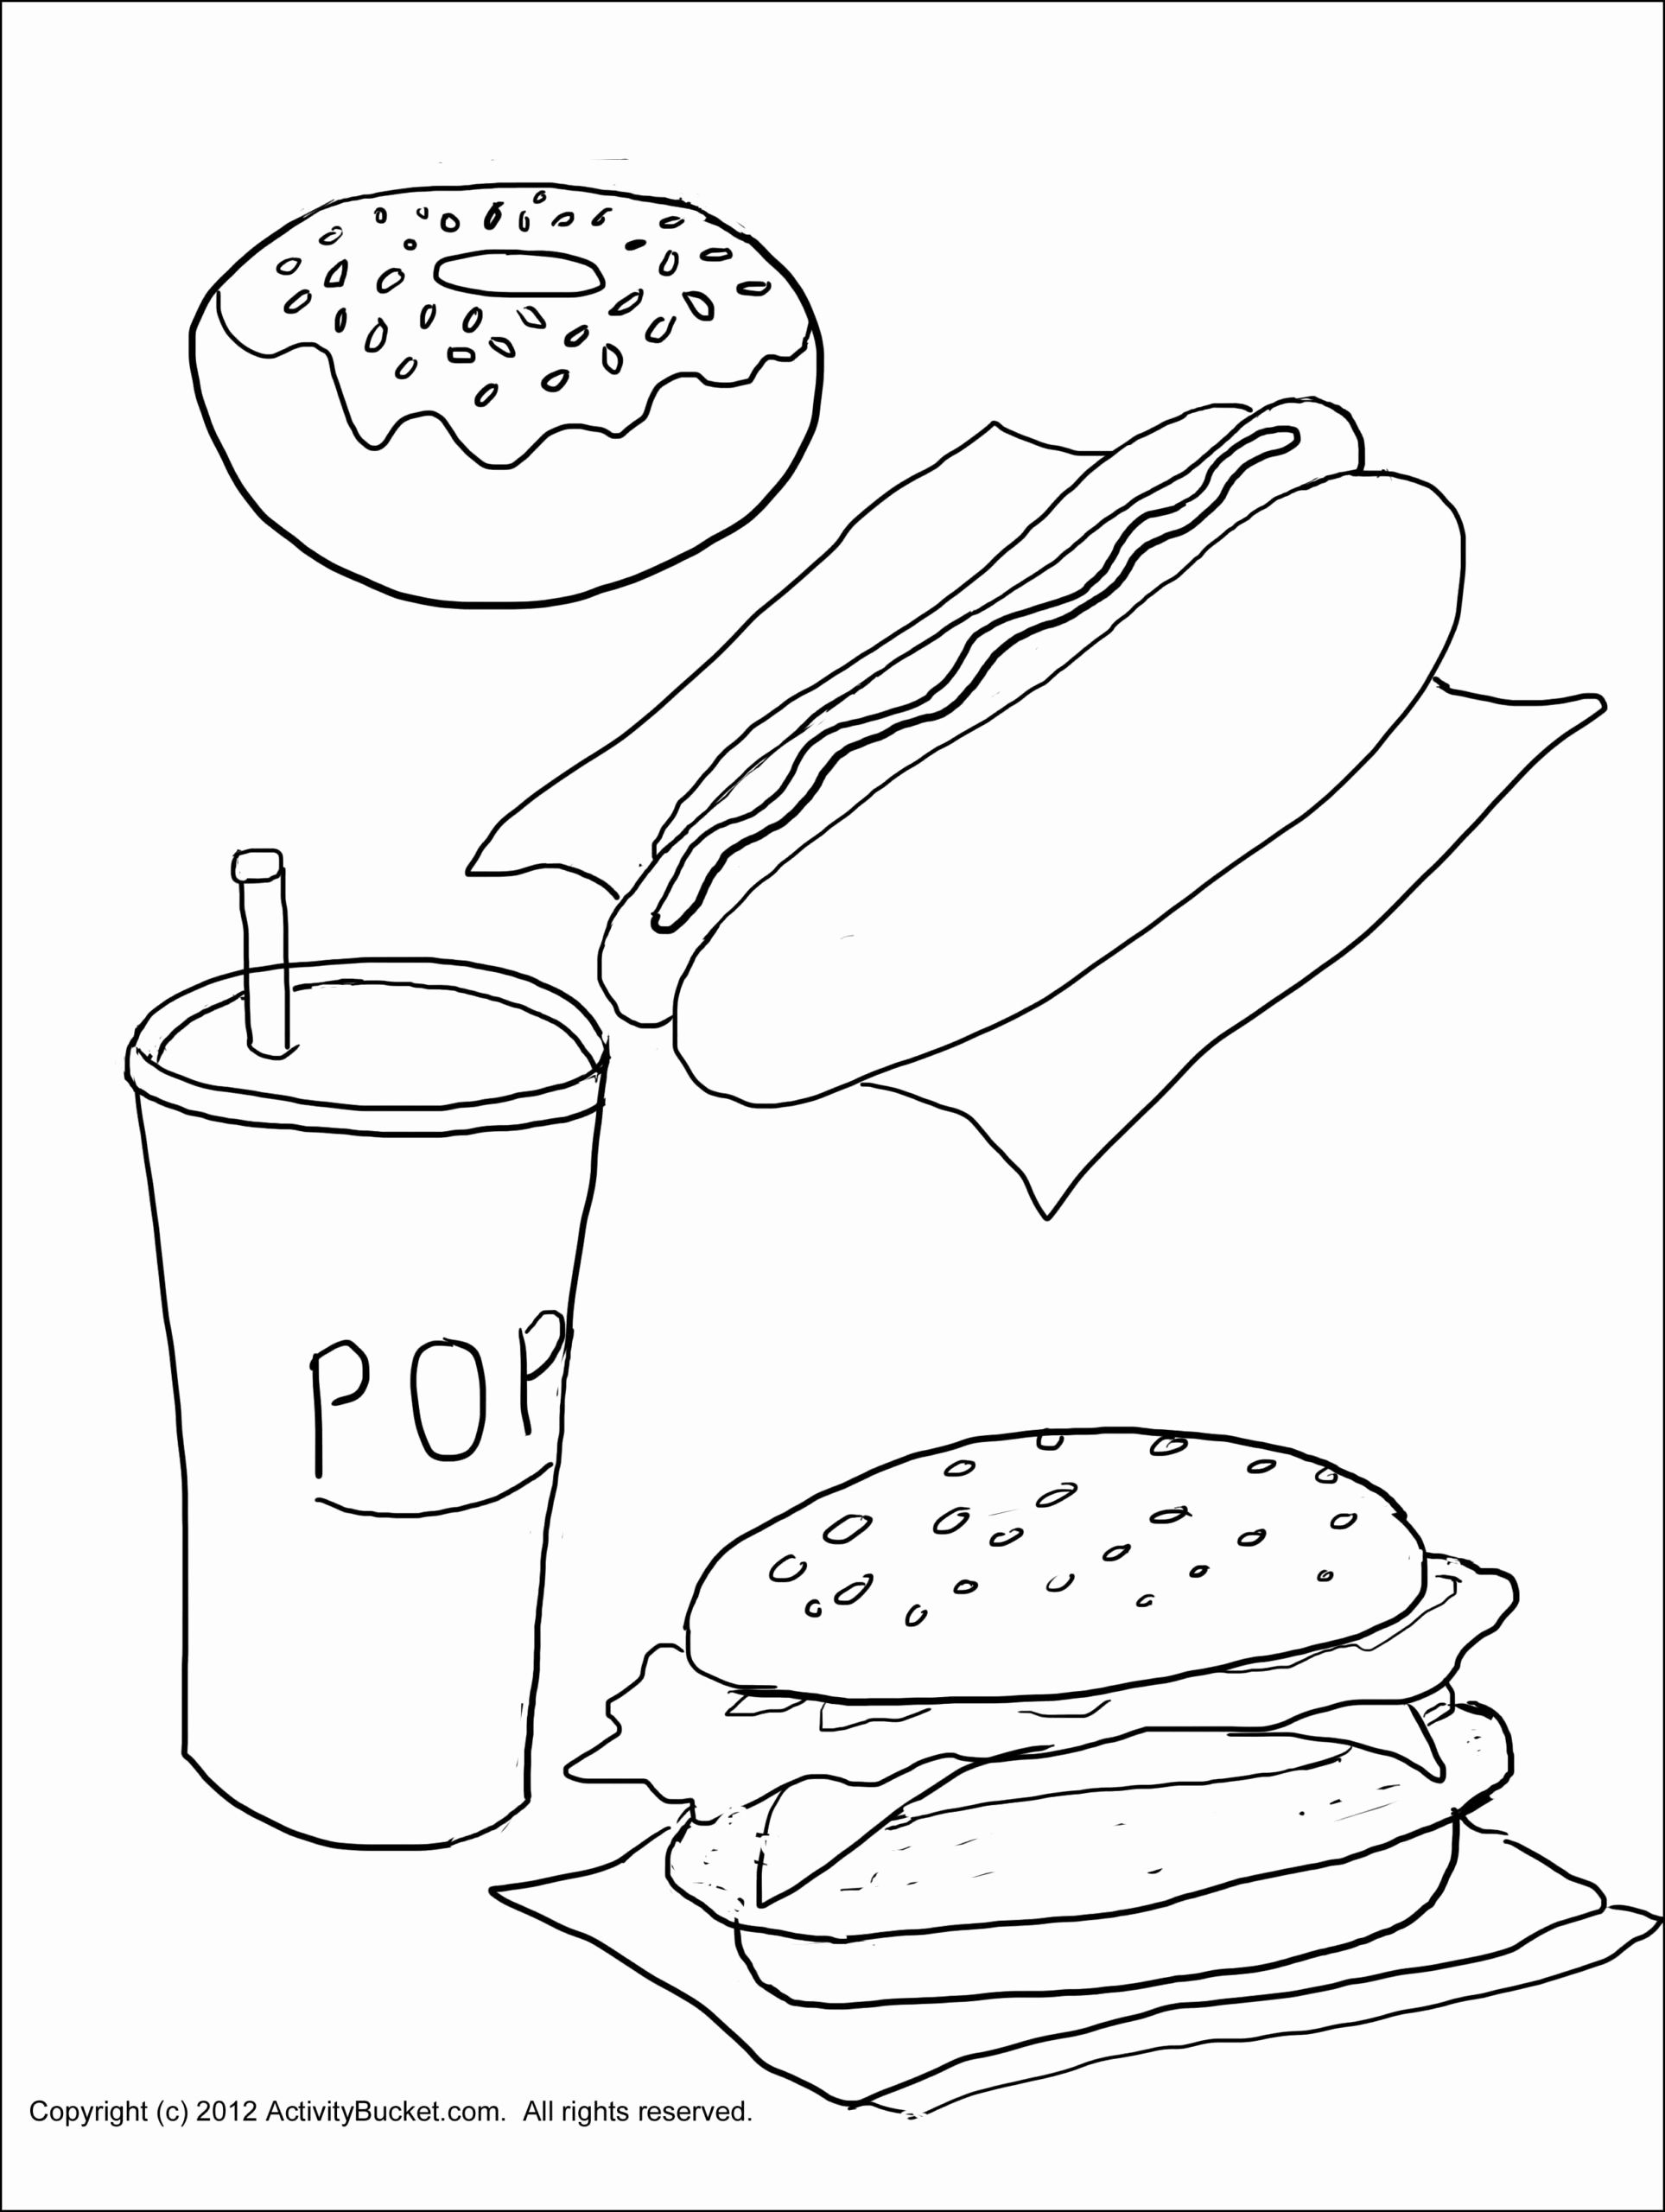 Coloring Pages Of Food For Kids Food Coloring Pages Coloring Pages For Kids Coloring Pages